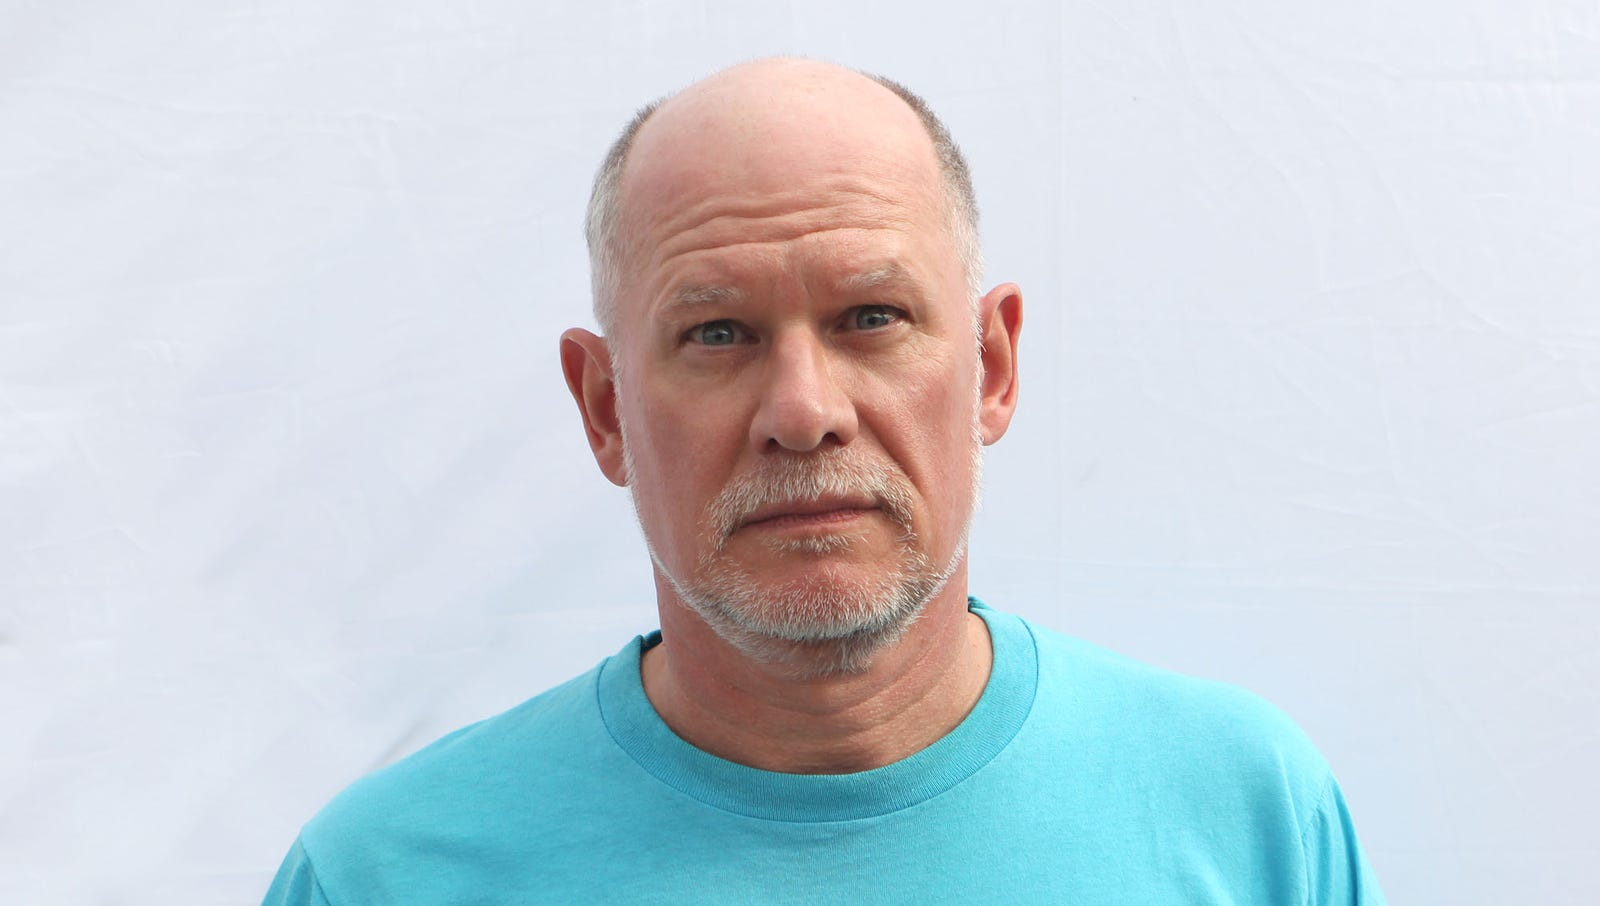 In recent years, the recreational use of methamphetamine has skyrocketed in the United States. While the drug imposes a range of short- and long-term deteriorative effects on the user's cognitive abilities, its immediate impact on one's physical appearance is perhaps even more astonishing. The man pictured above is Carl Nesbitt of Swampscott, MA. This photo was taken before he began smoking crystal meth.